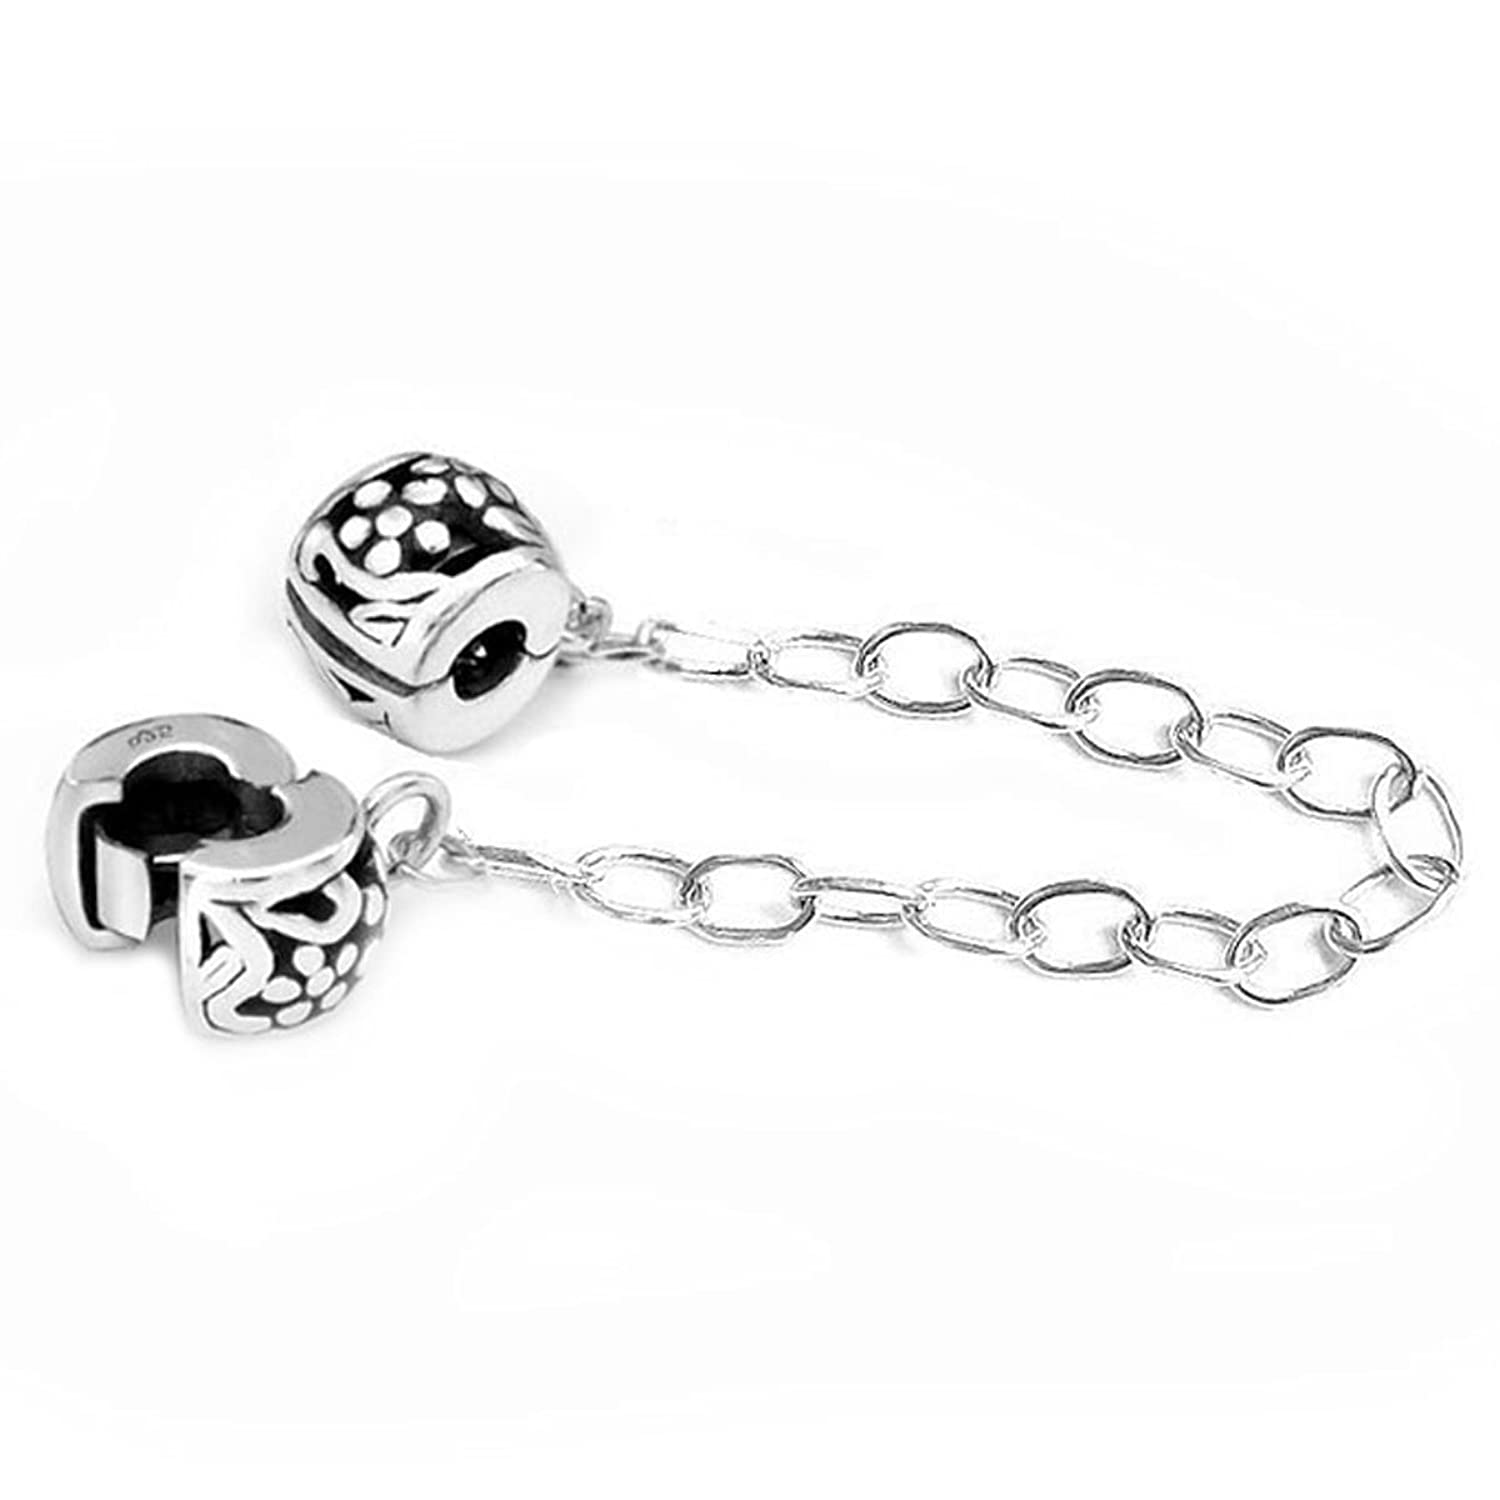 Sterling Silver Stopper Safety Chain Bead For European Charm Bracelets